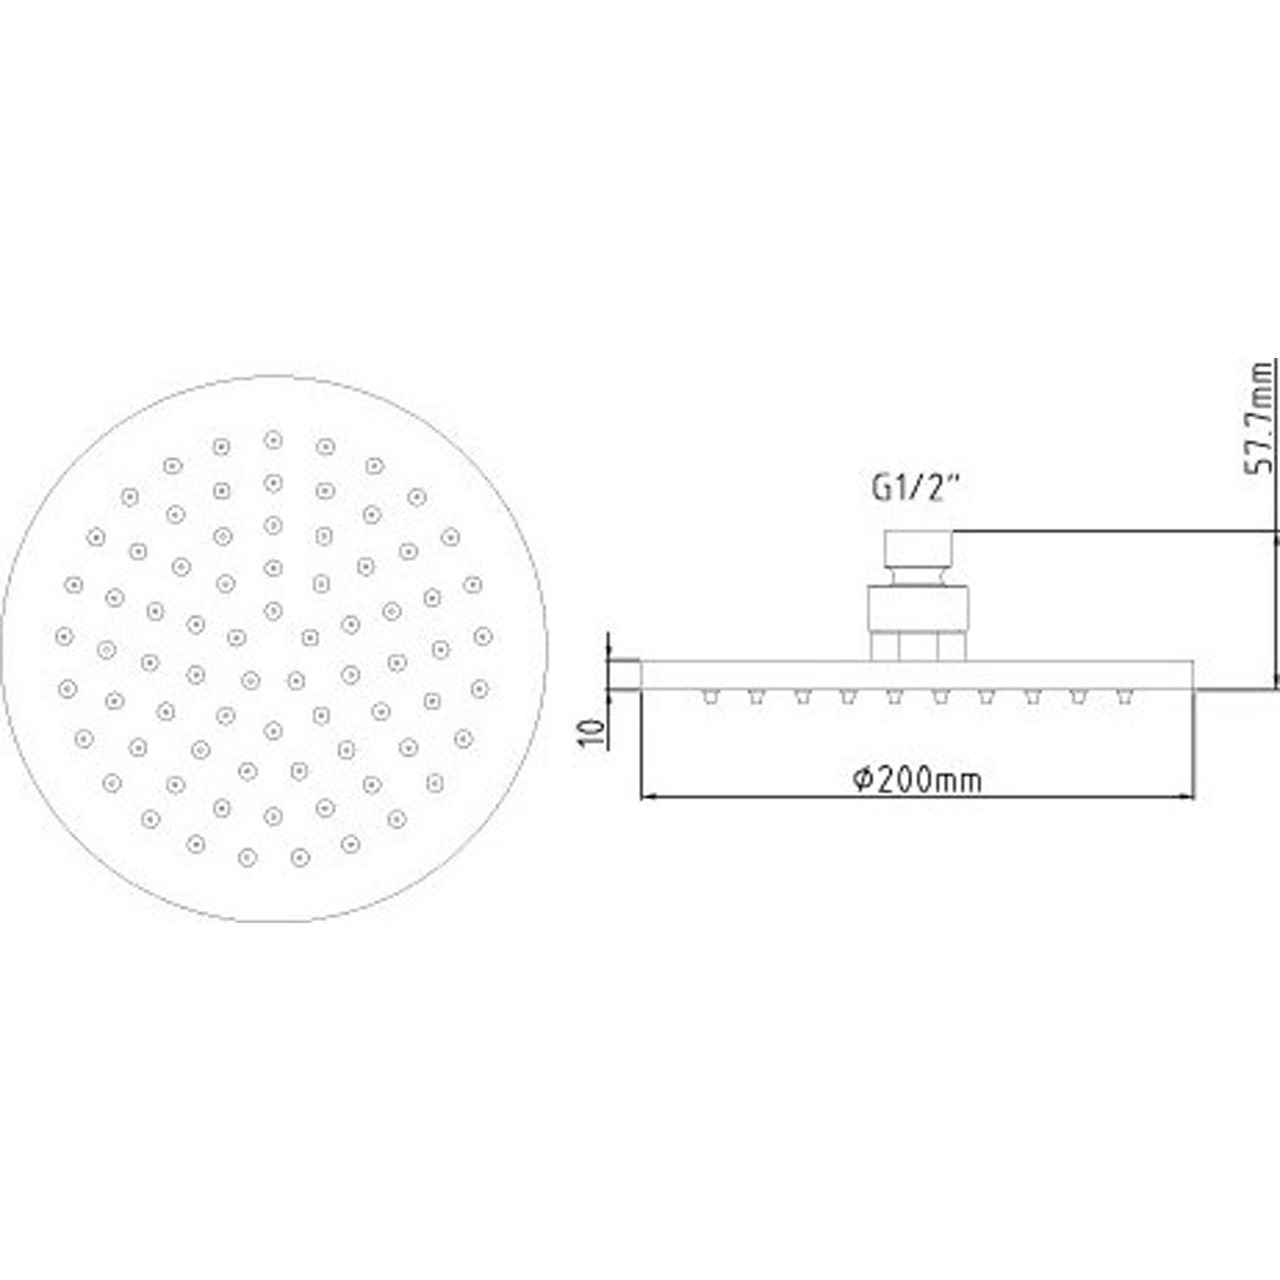 Ultra LED 200mm Round Fixed Shower Head - STY069